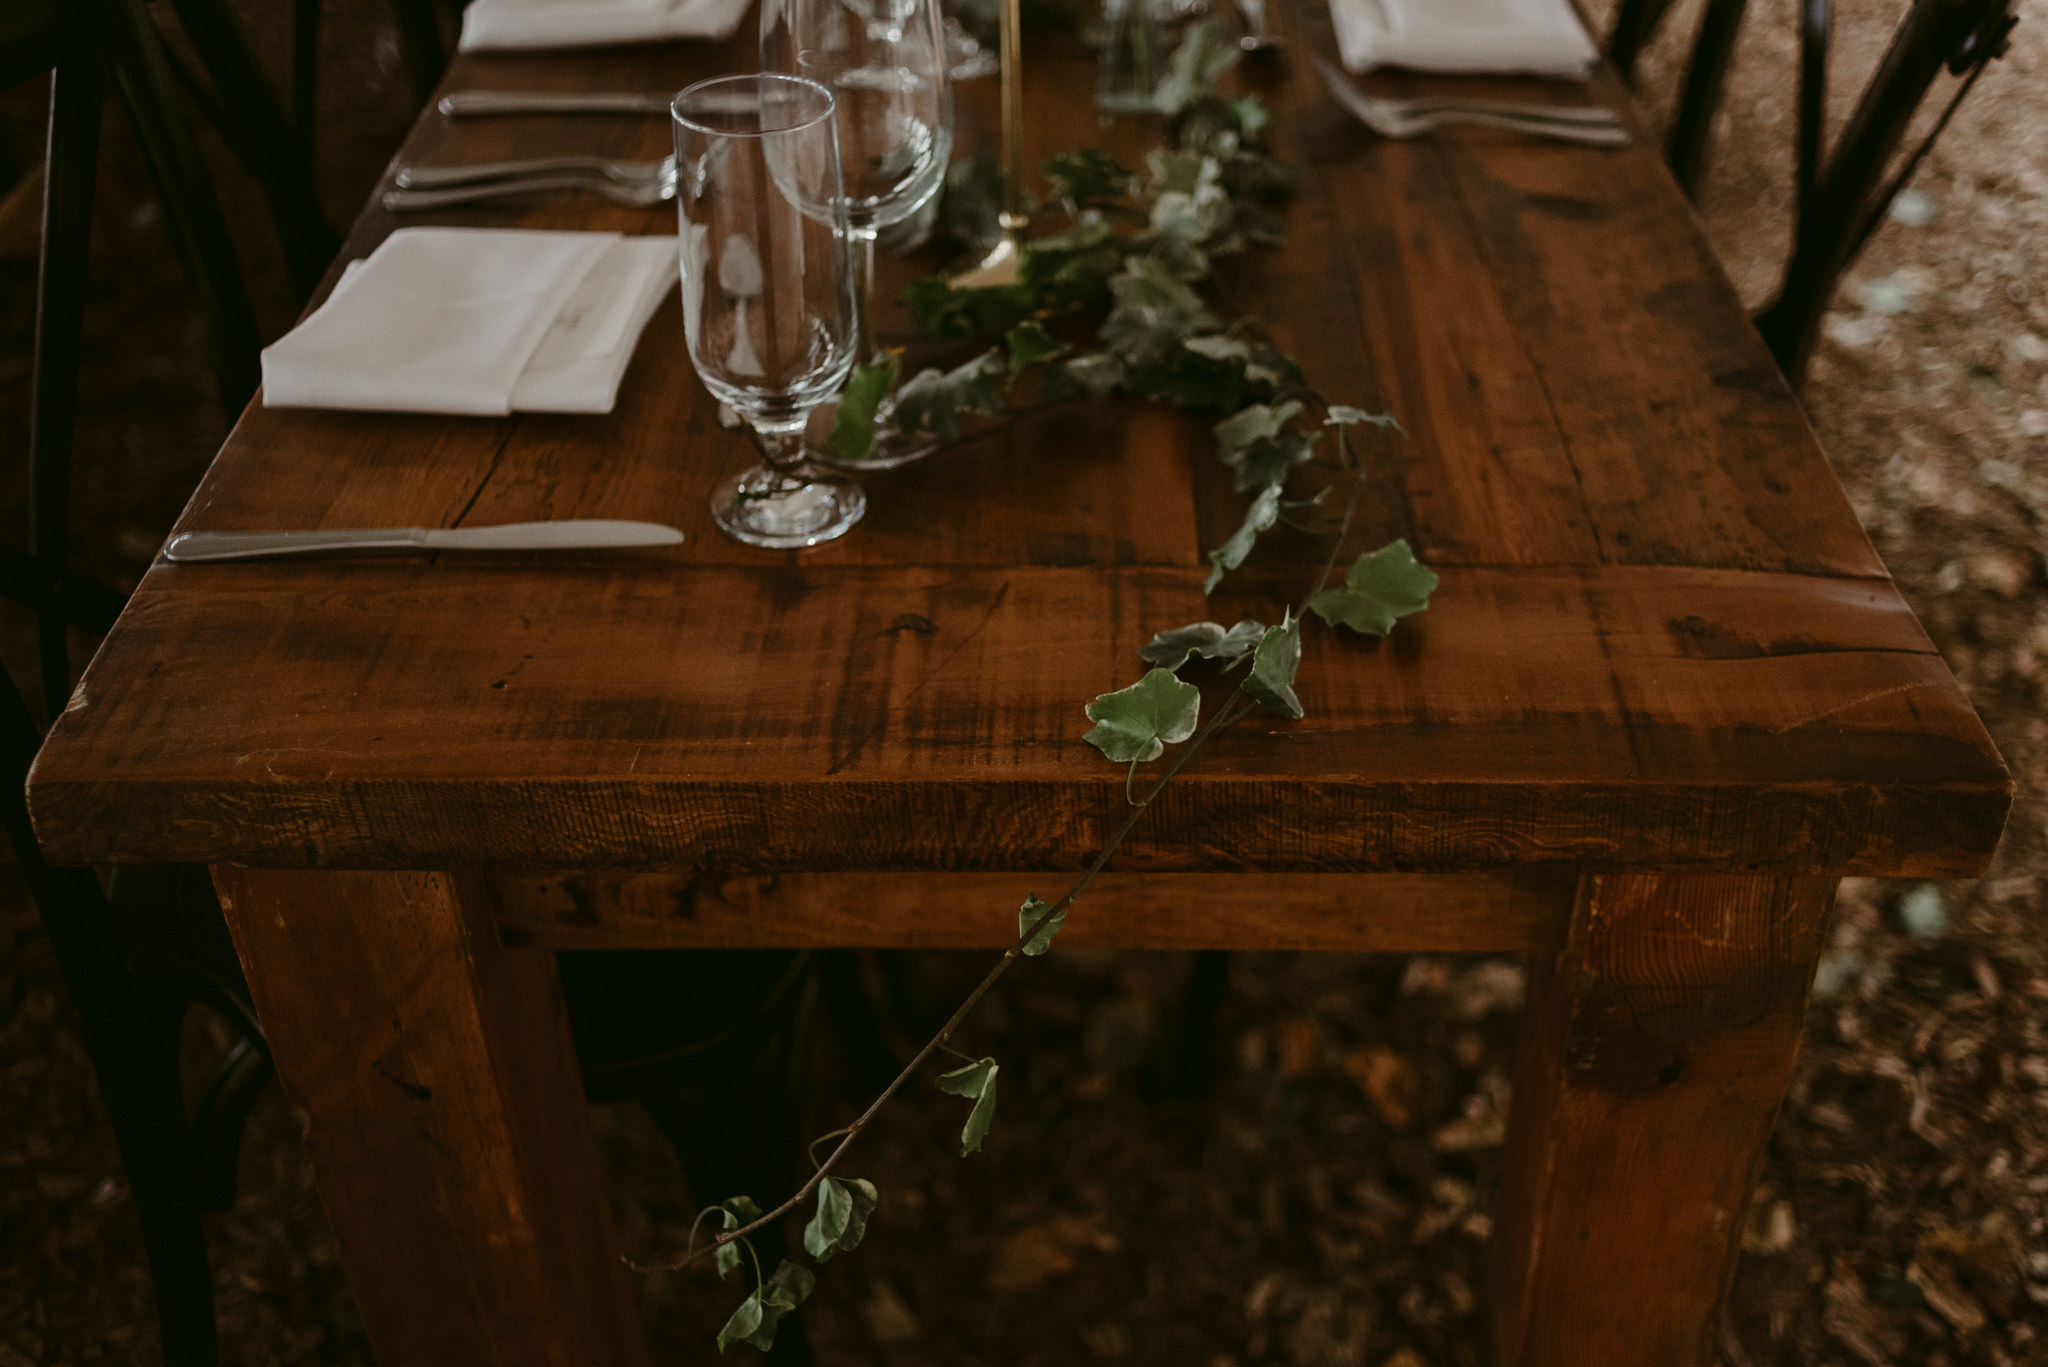 vines on wooden table for wedding reception table setup